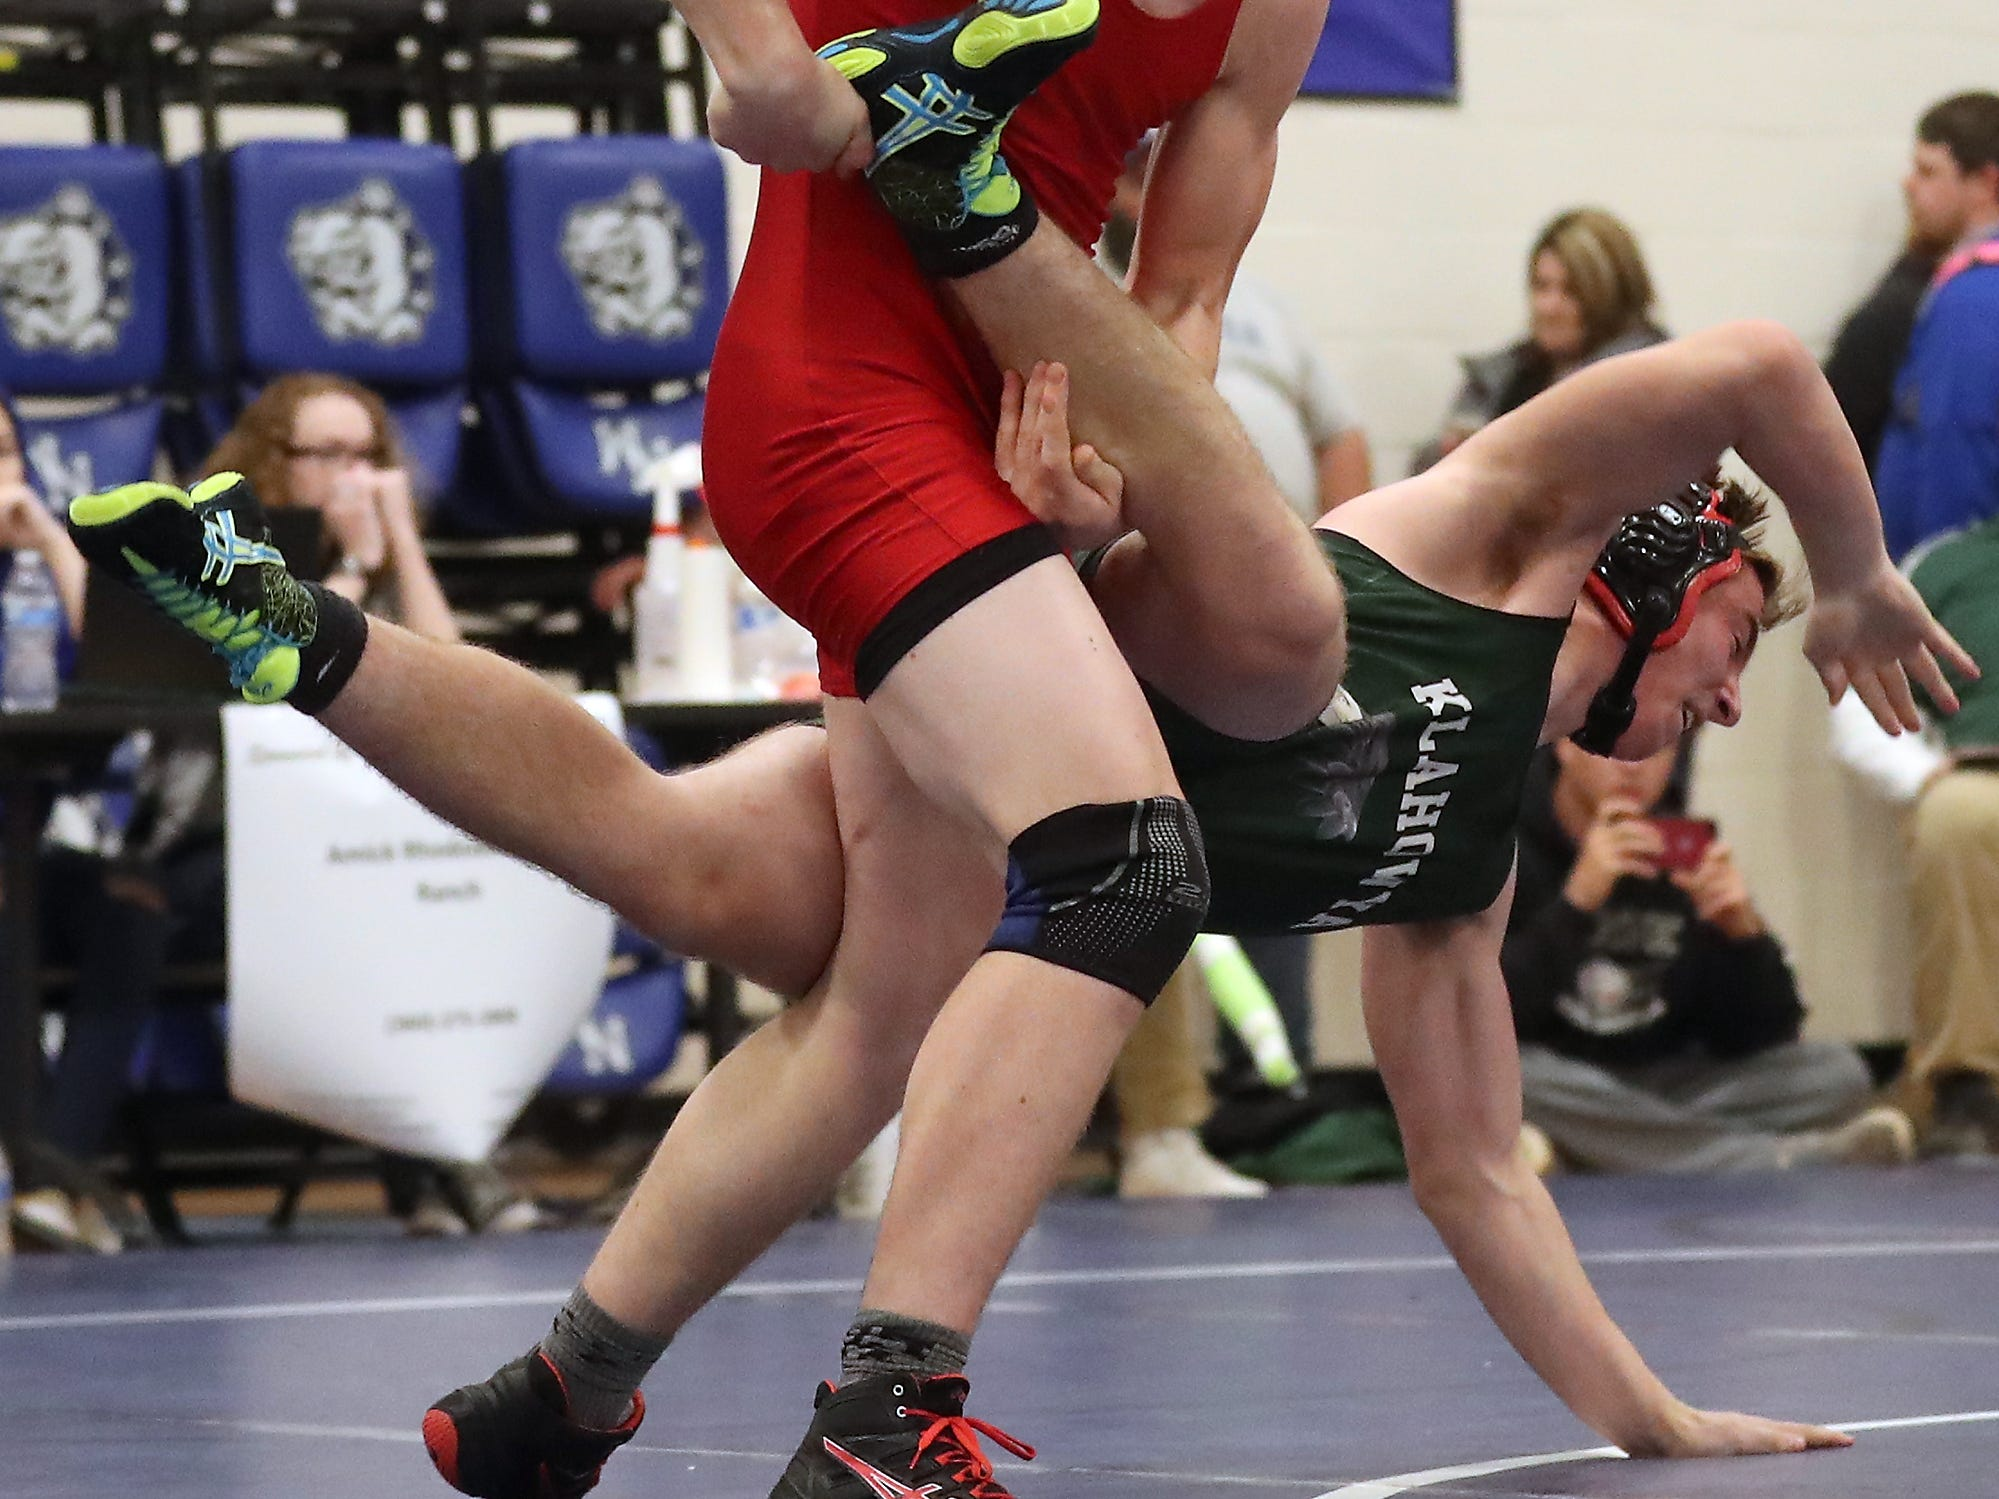 Port Townsend's Dylan Tracer (left) sweeps Klahowya's Hunter Wallis to the mat during their 182-pound finals bout at the North Mason Hawkins Memorial Wrestling Tournament in Belfair on Saturday, December 22, 2018.